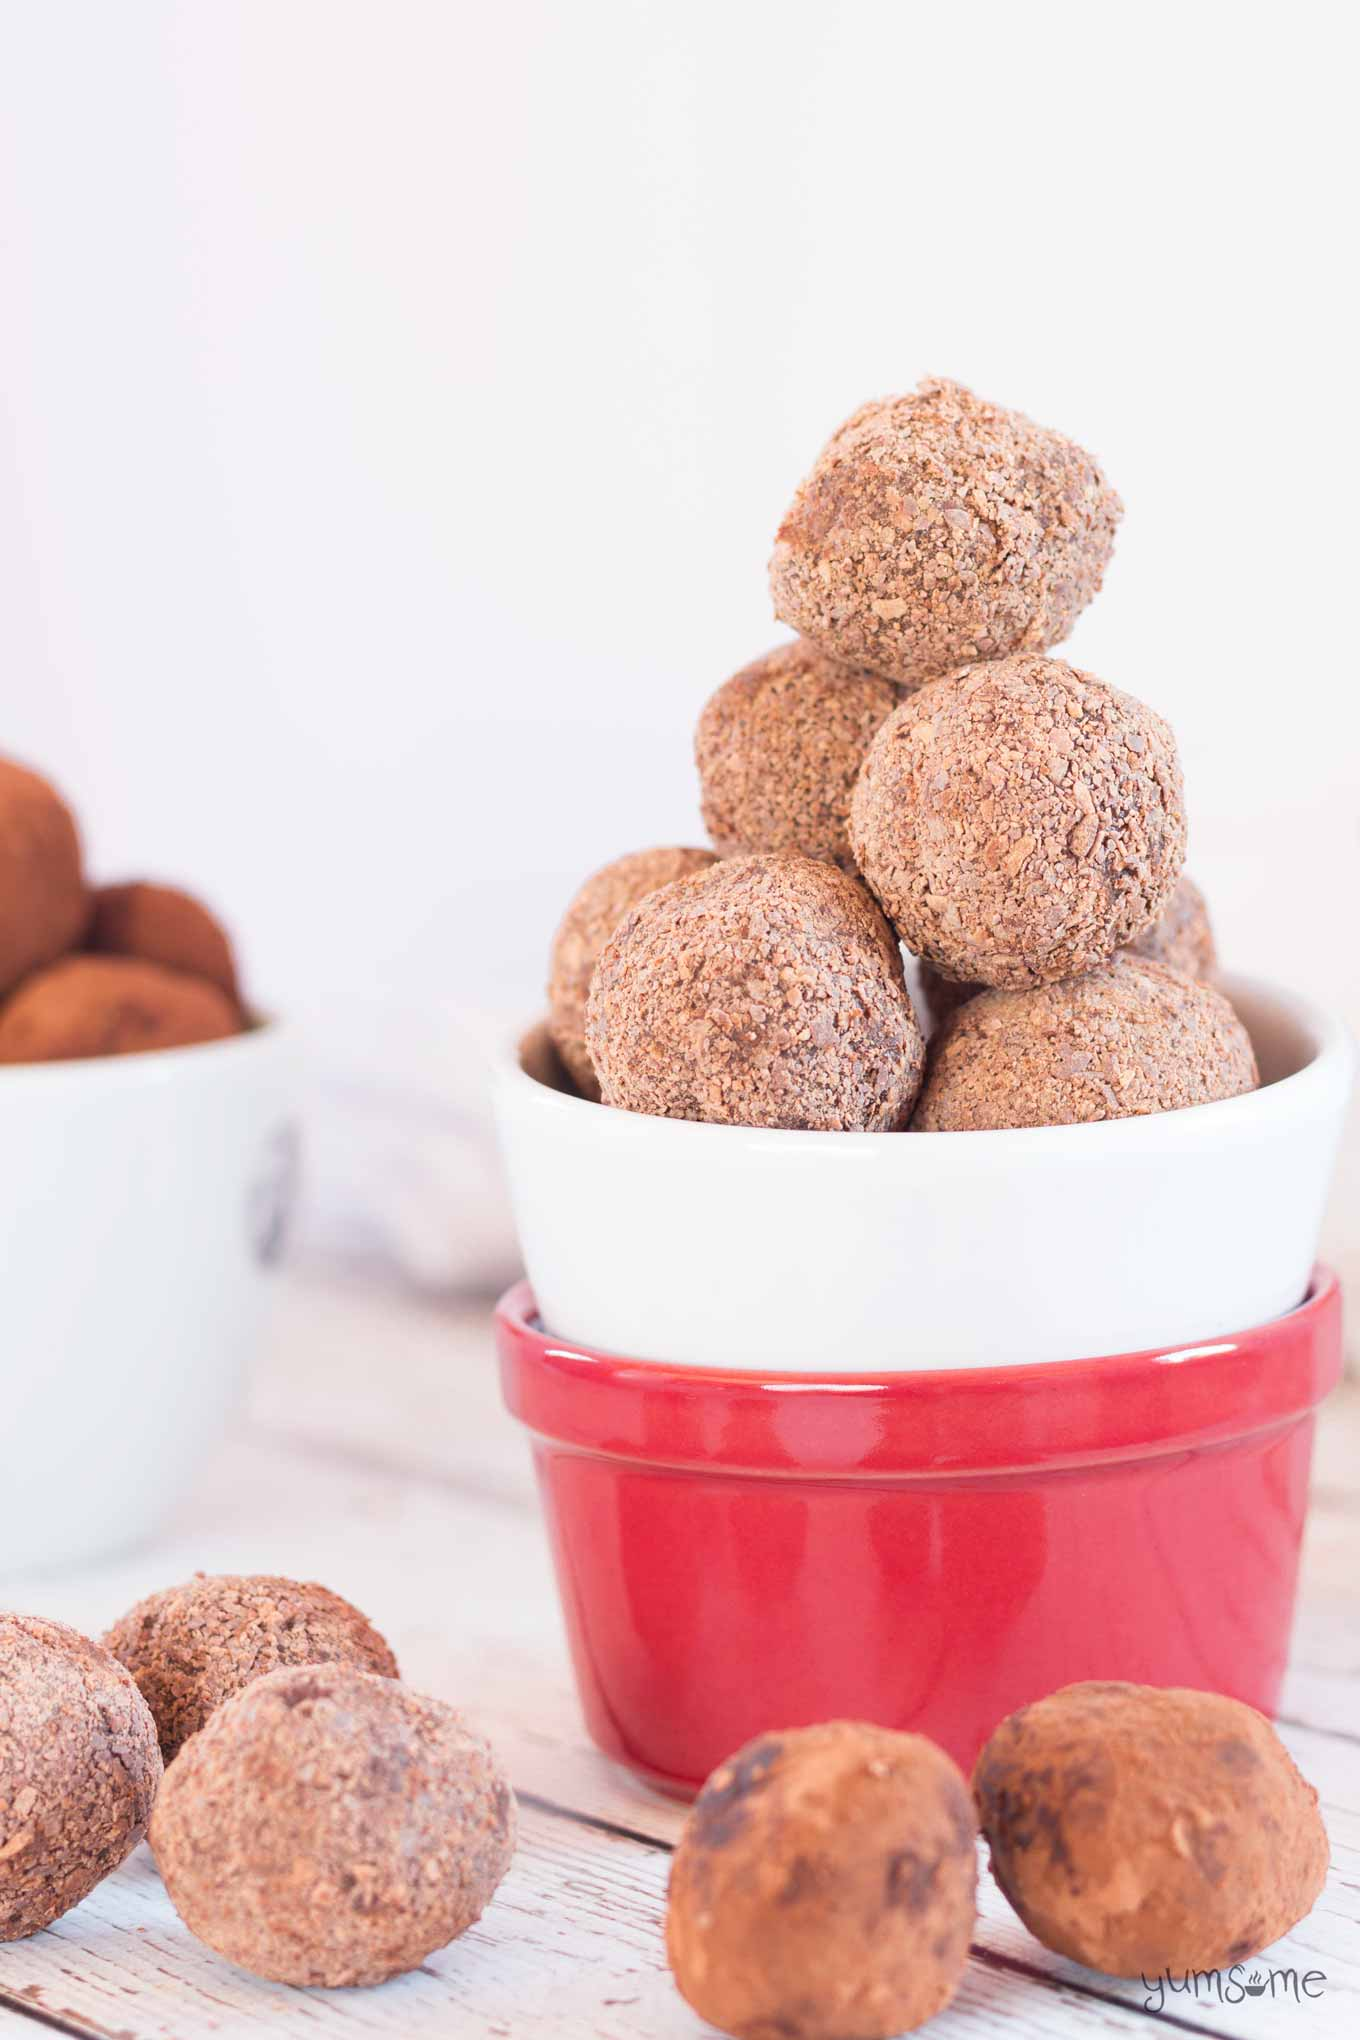 A stack of vegan raspberry chocolate truffles in a red and white bowl.